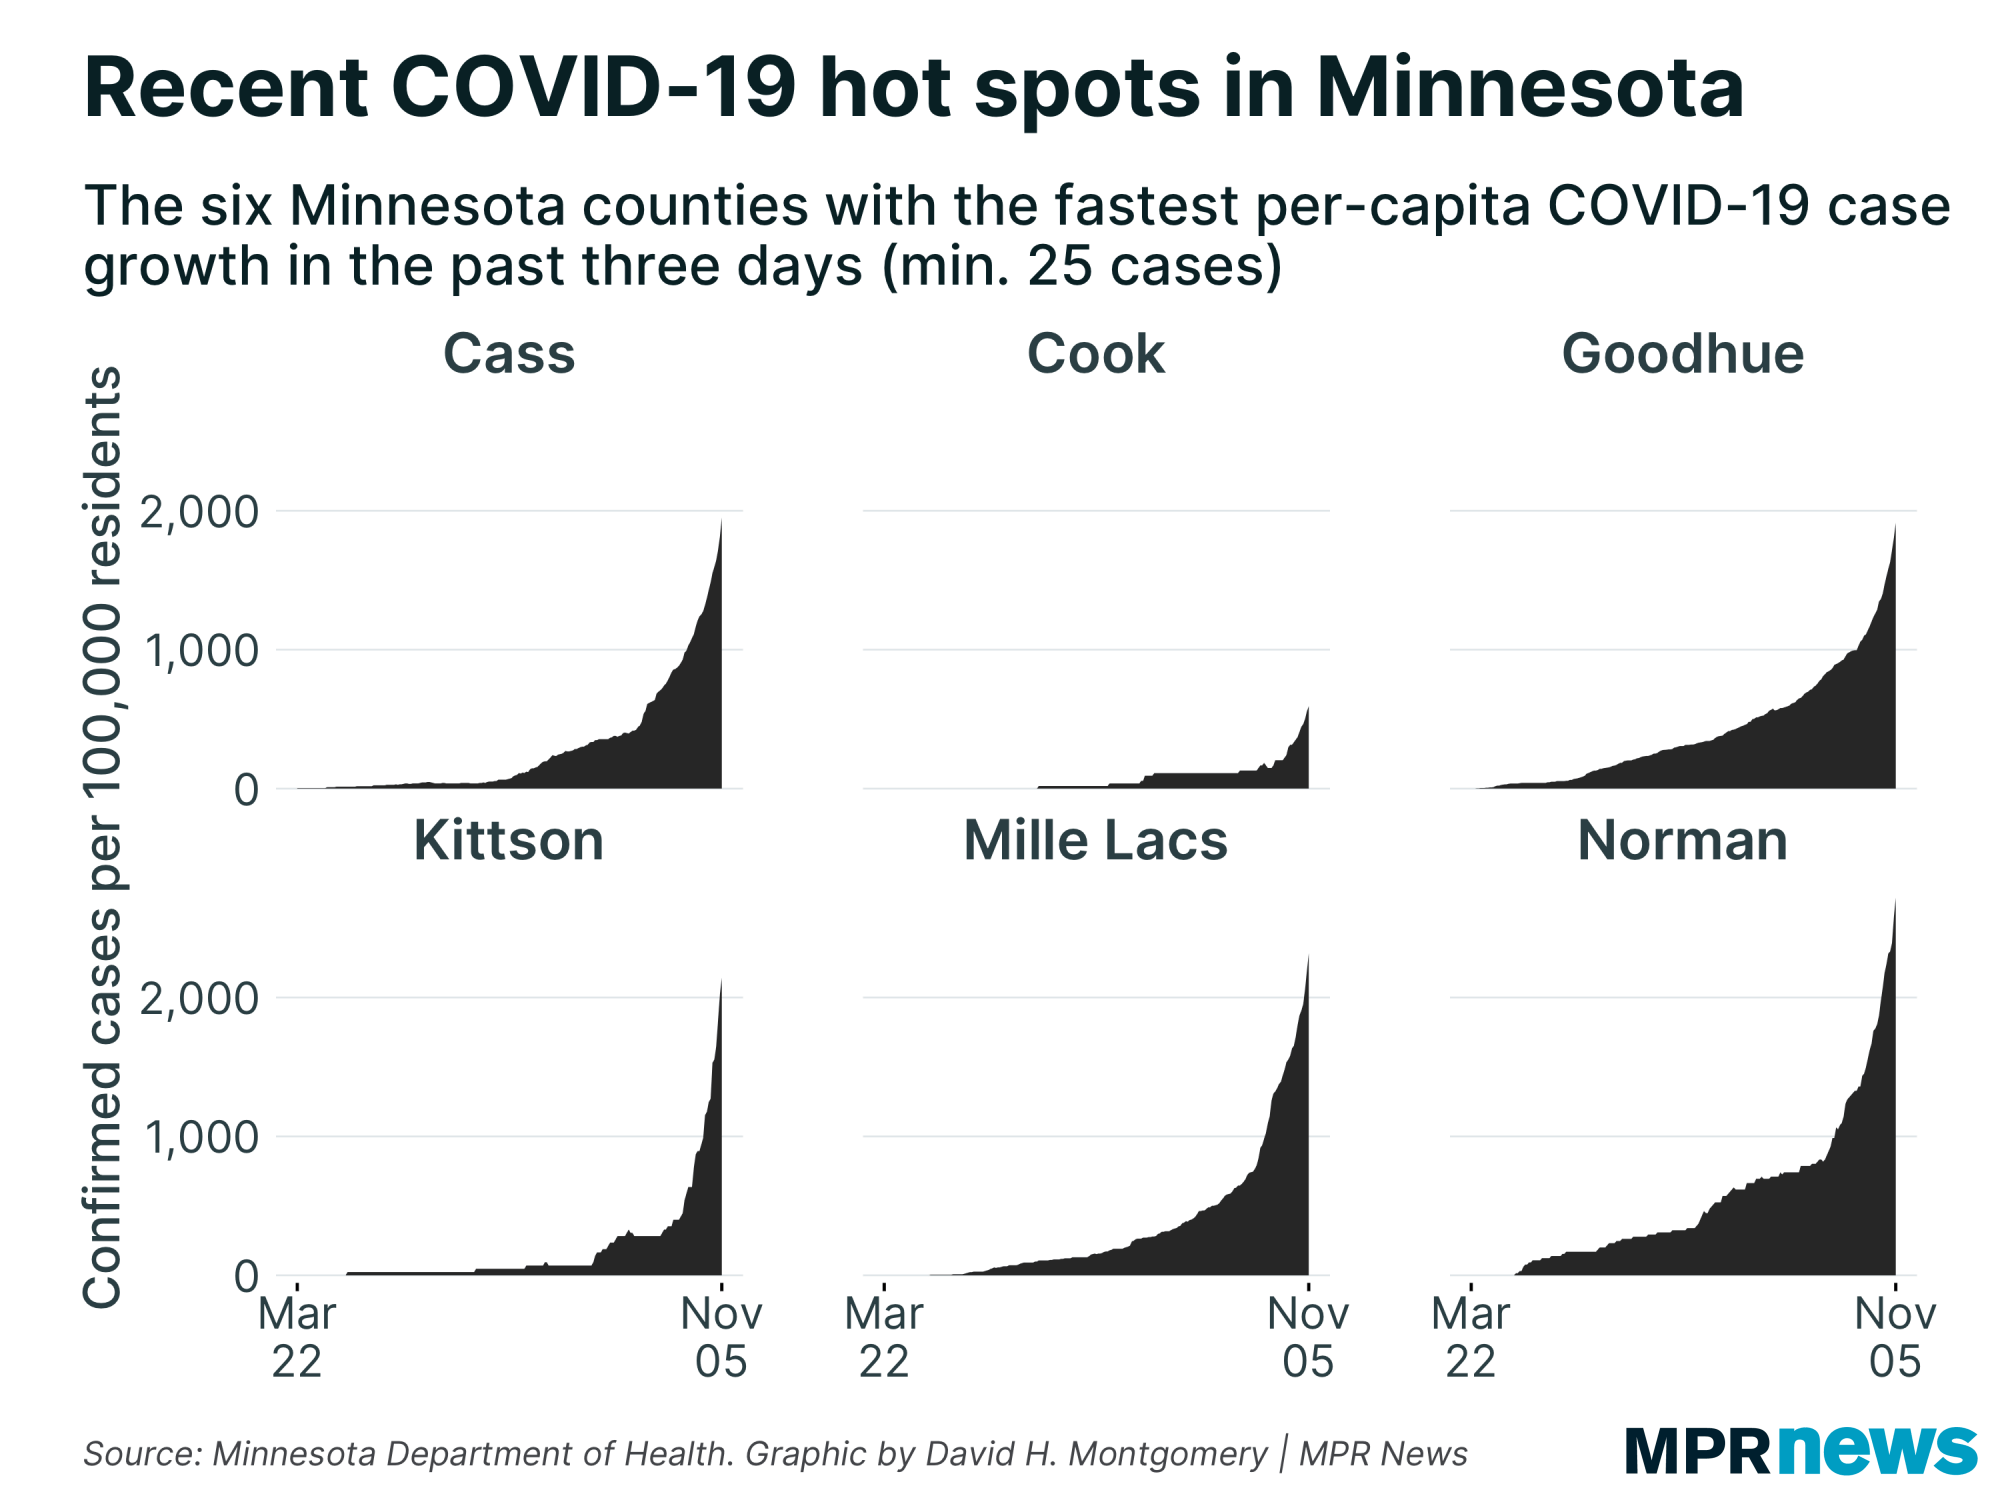 The MN districts have the fastest growth per capita in the COVID-19 cases